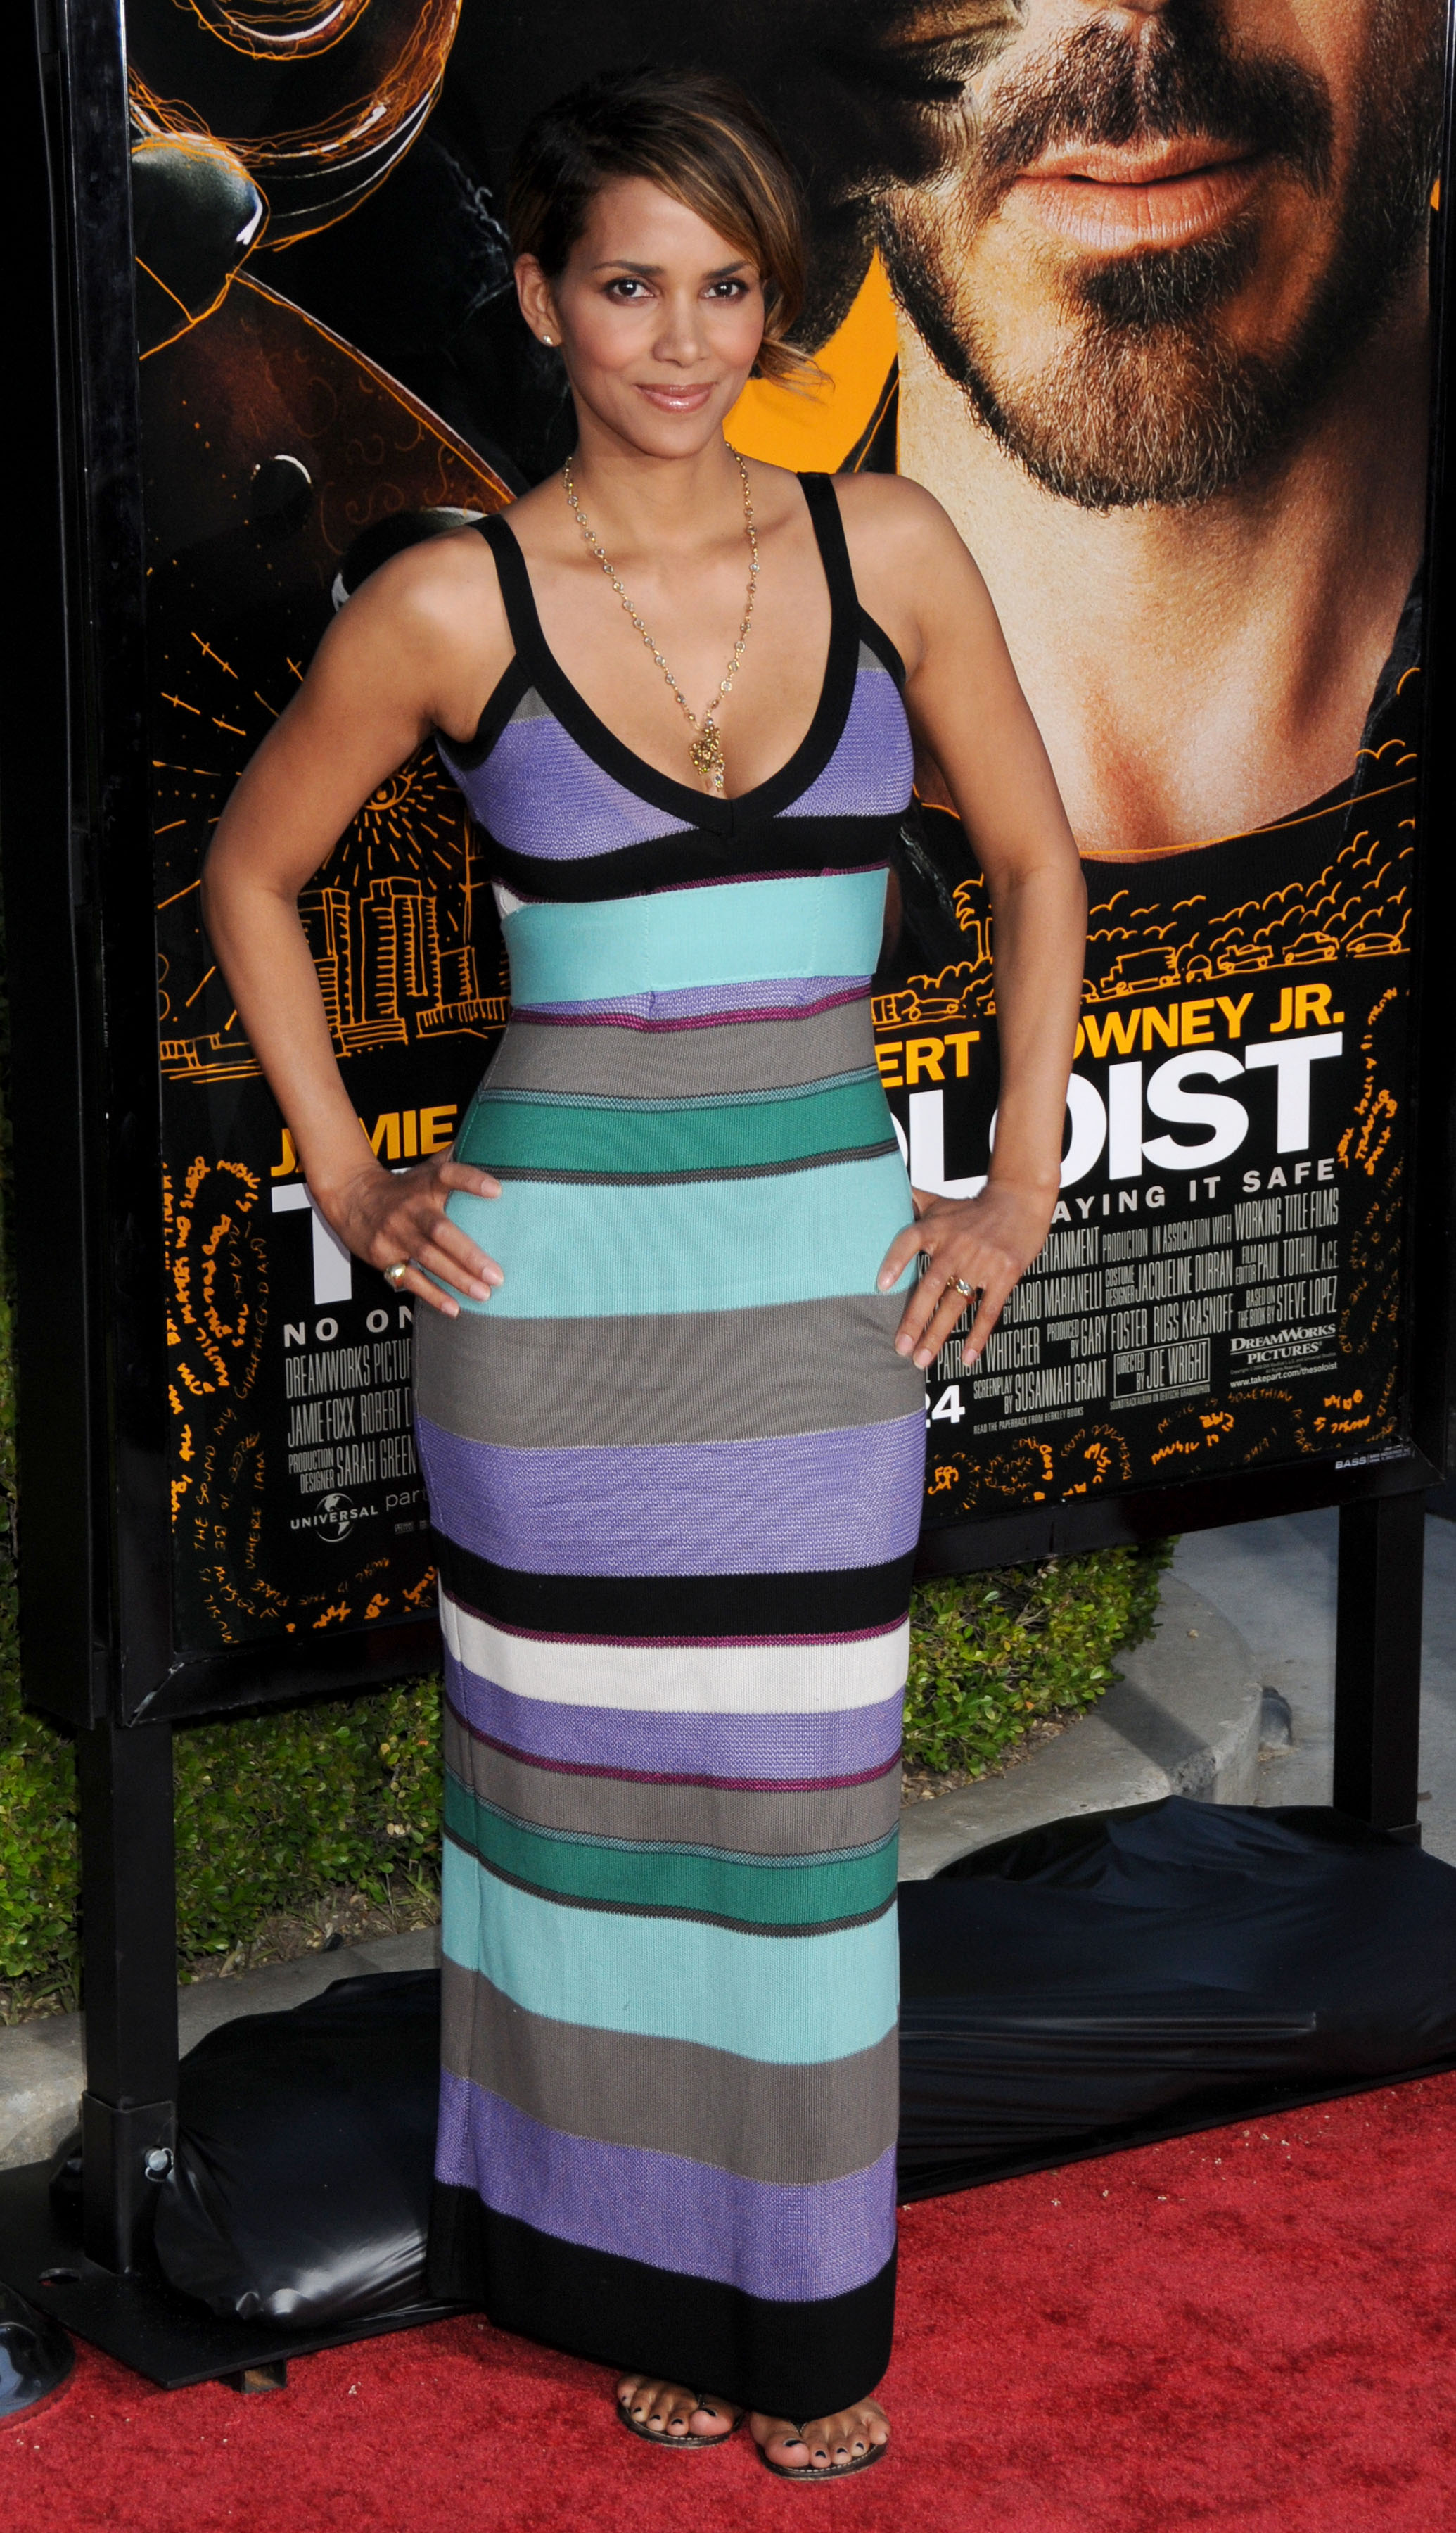 68105_Halle_Berry_The_Soloist_premiere_in_Los_Angeles_28_122_599lo.jpg